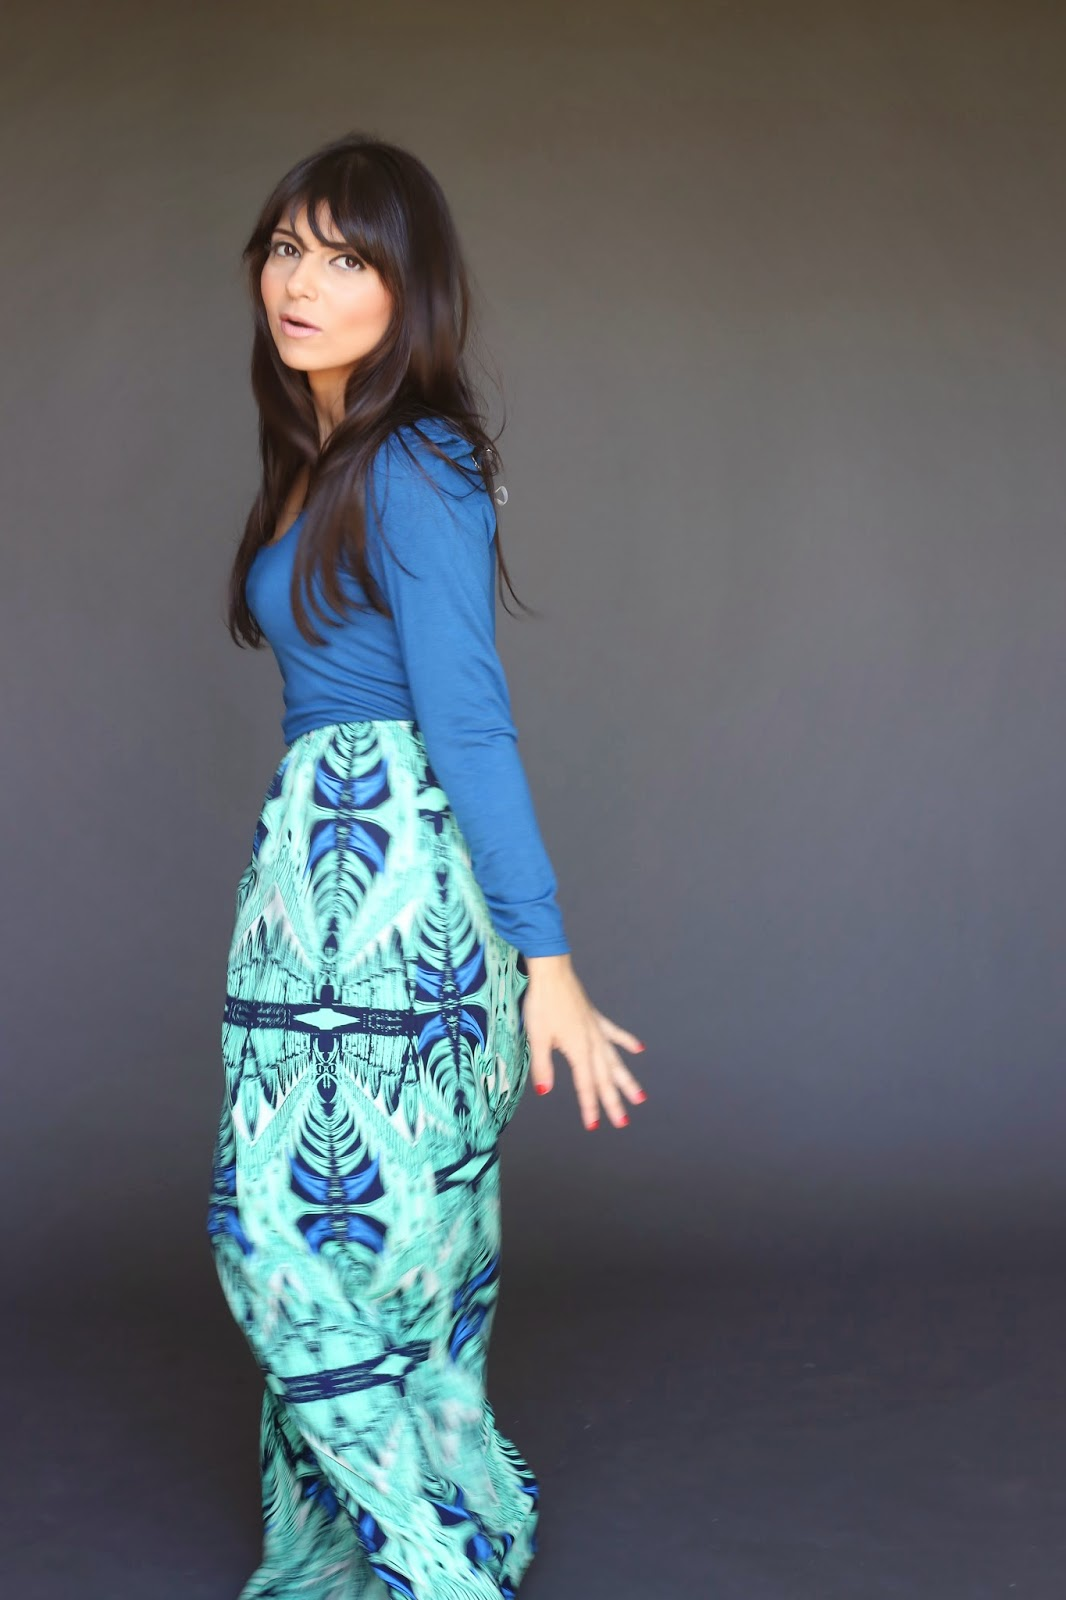 Long sleeve modest maxi dress with blue top and tribal print skirt Mode-sty hijab tznius fashion style islamic kosher